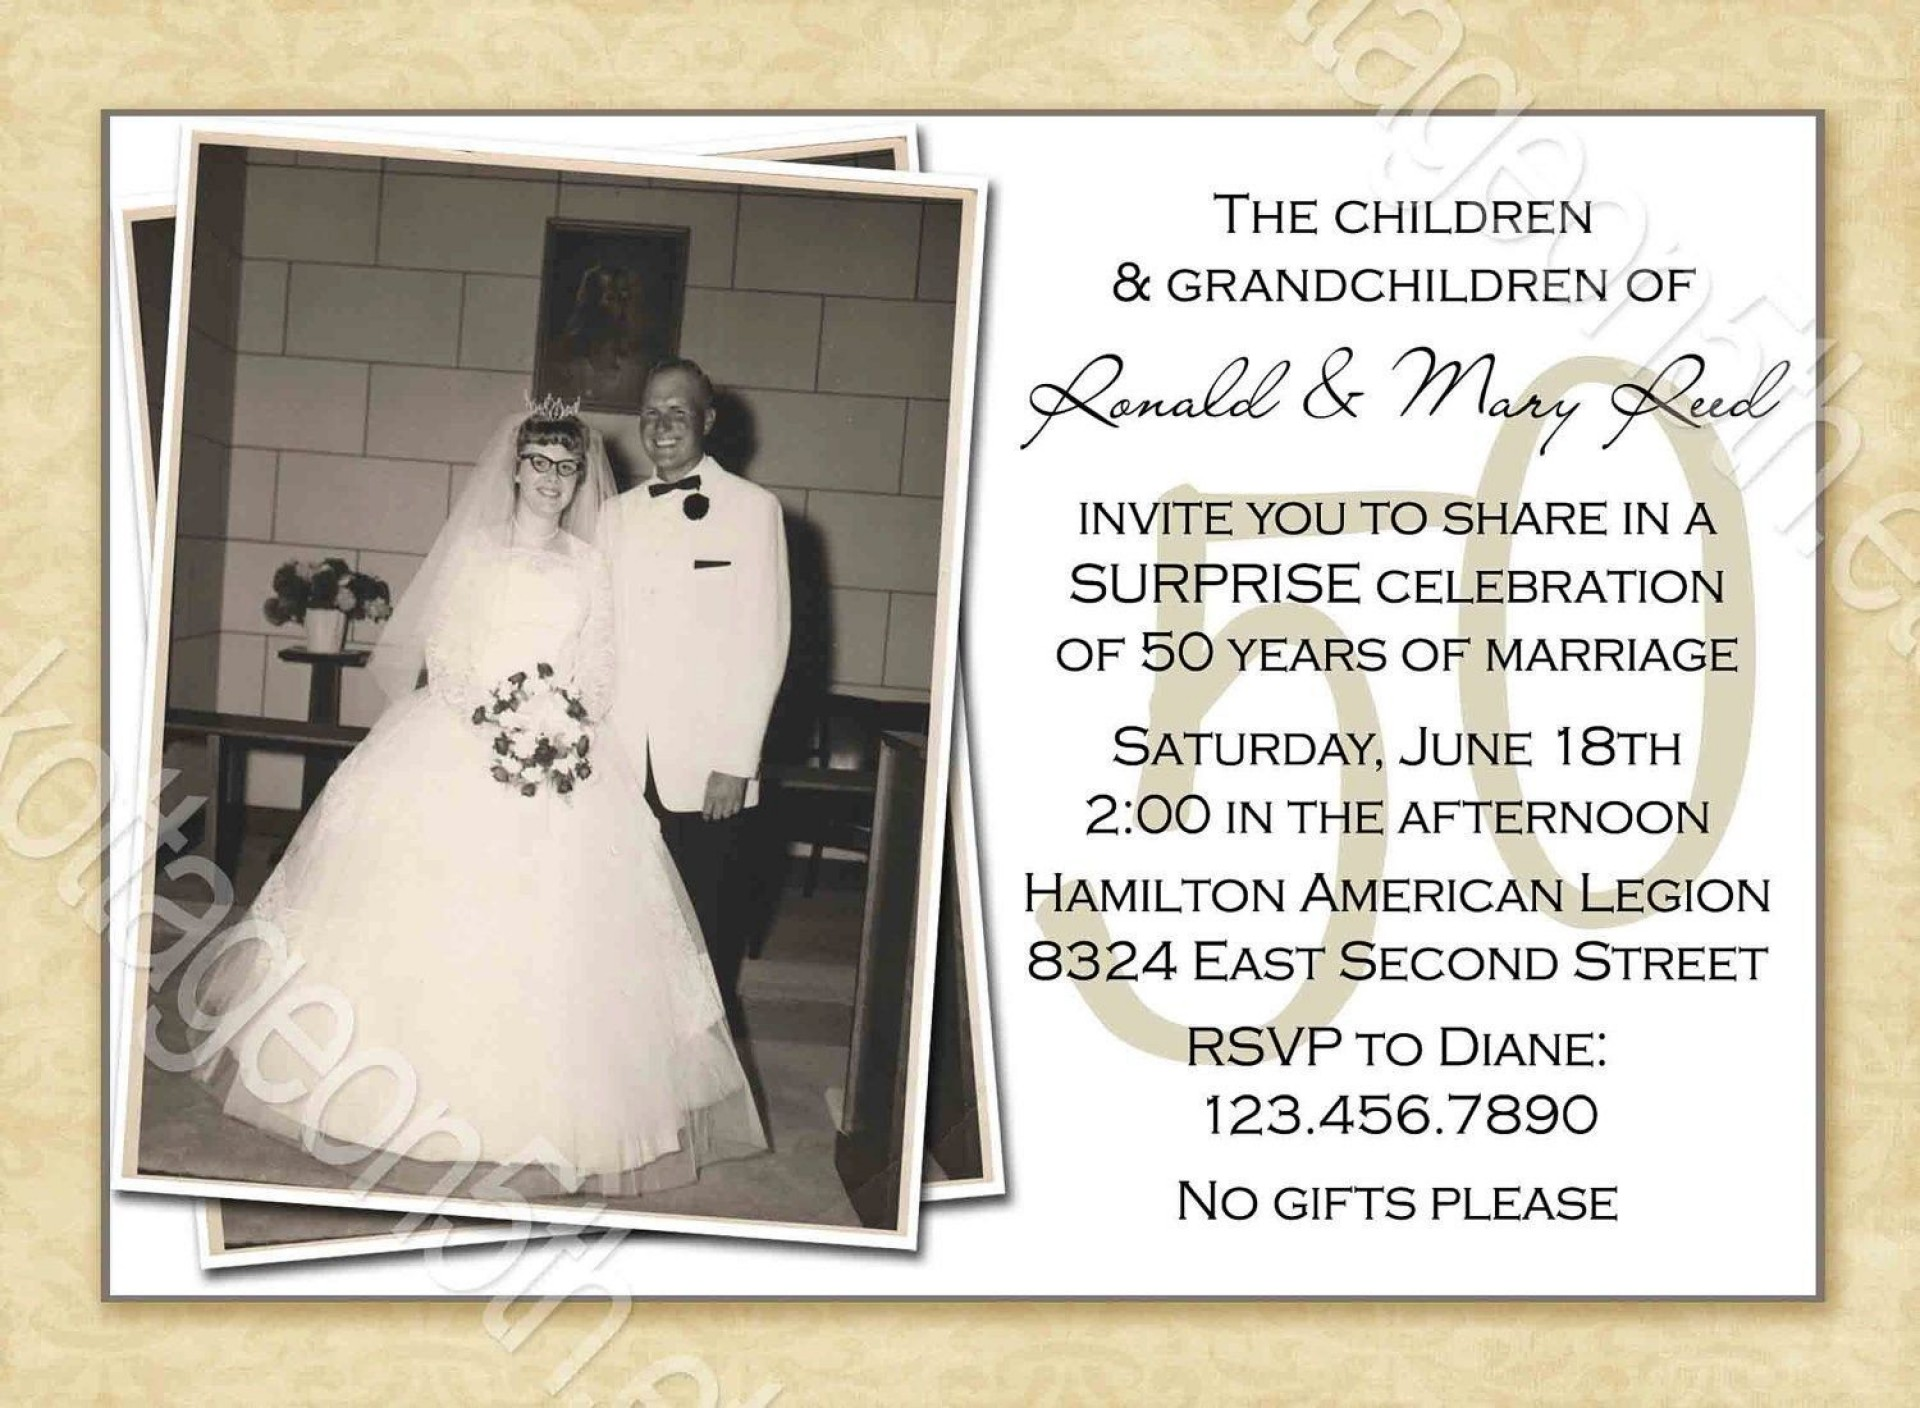 000 Formidable Golden Wedding Anniversary Invitation Template Free Highest Clarity  50th Microsoft Word Download1920